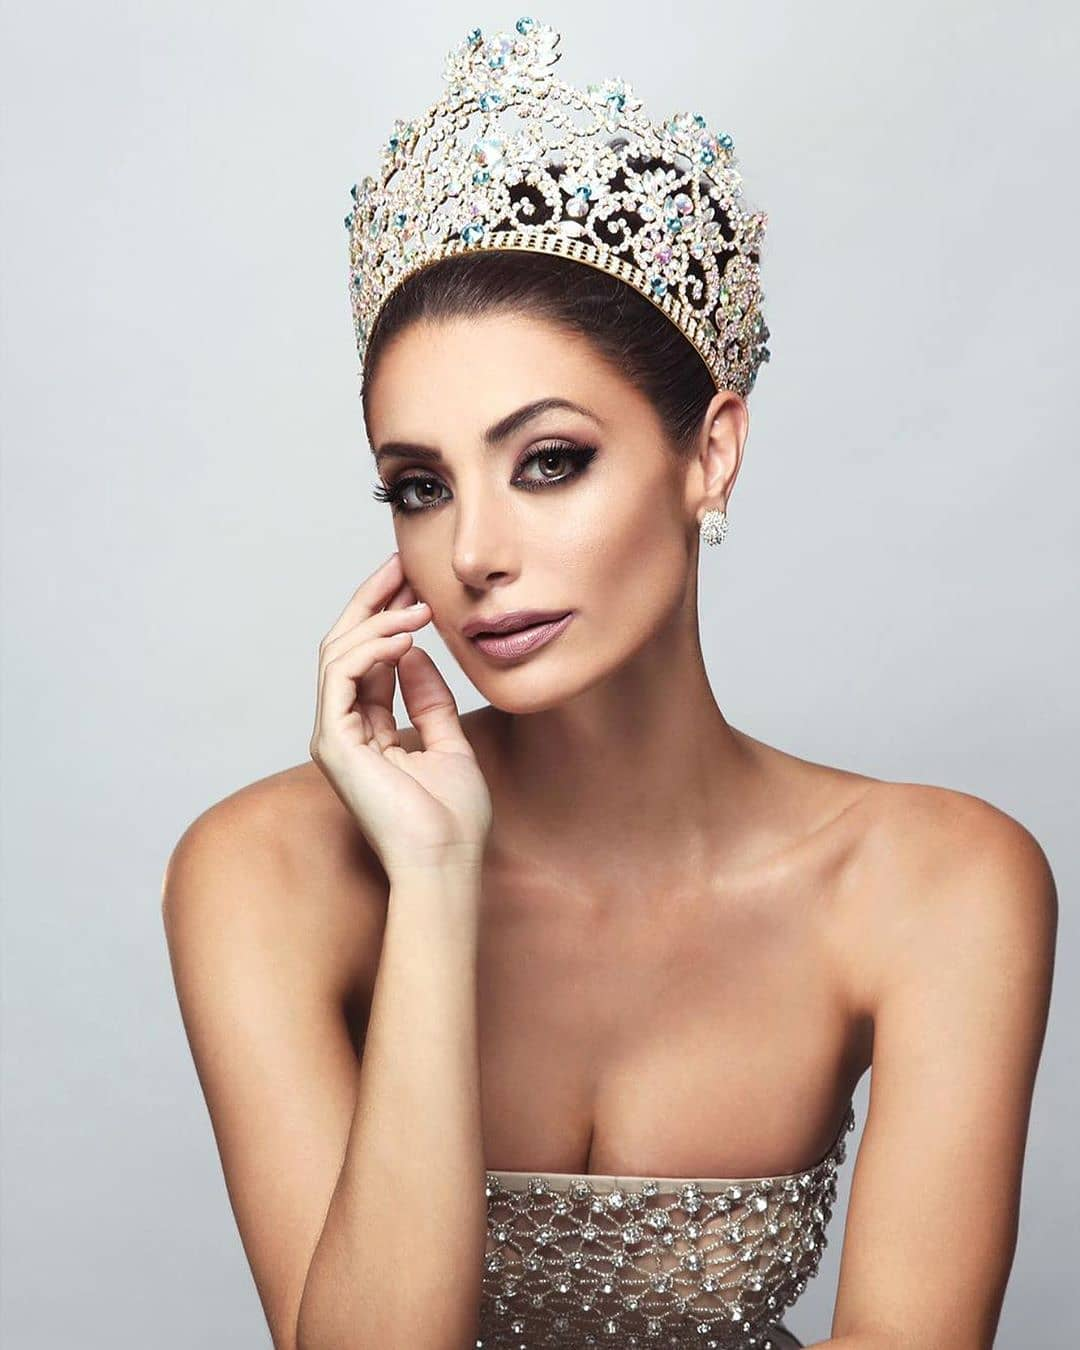 ivana carolina irizarry, miss international puerto rico 2019. 75281111